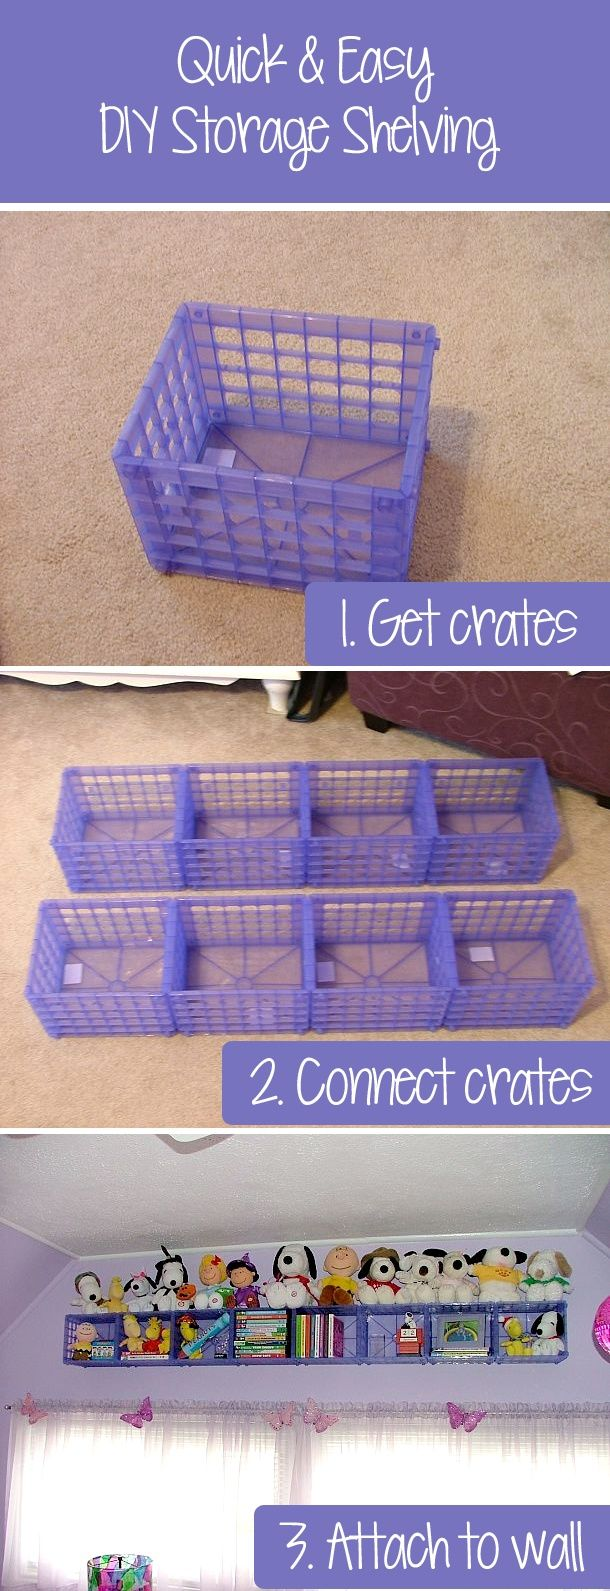 A cheap, easy, #DIY solution for extra storage and shelf space in the kids' bedroom or playroom.